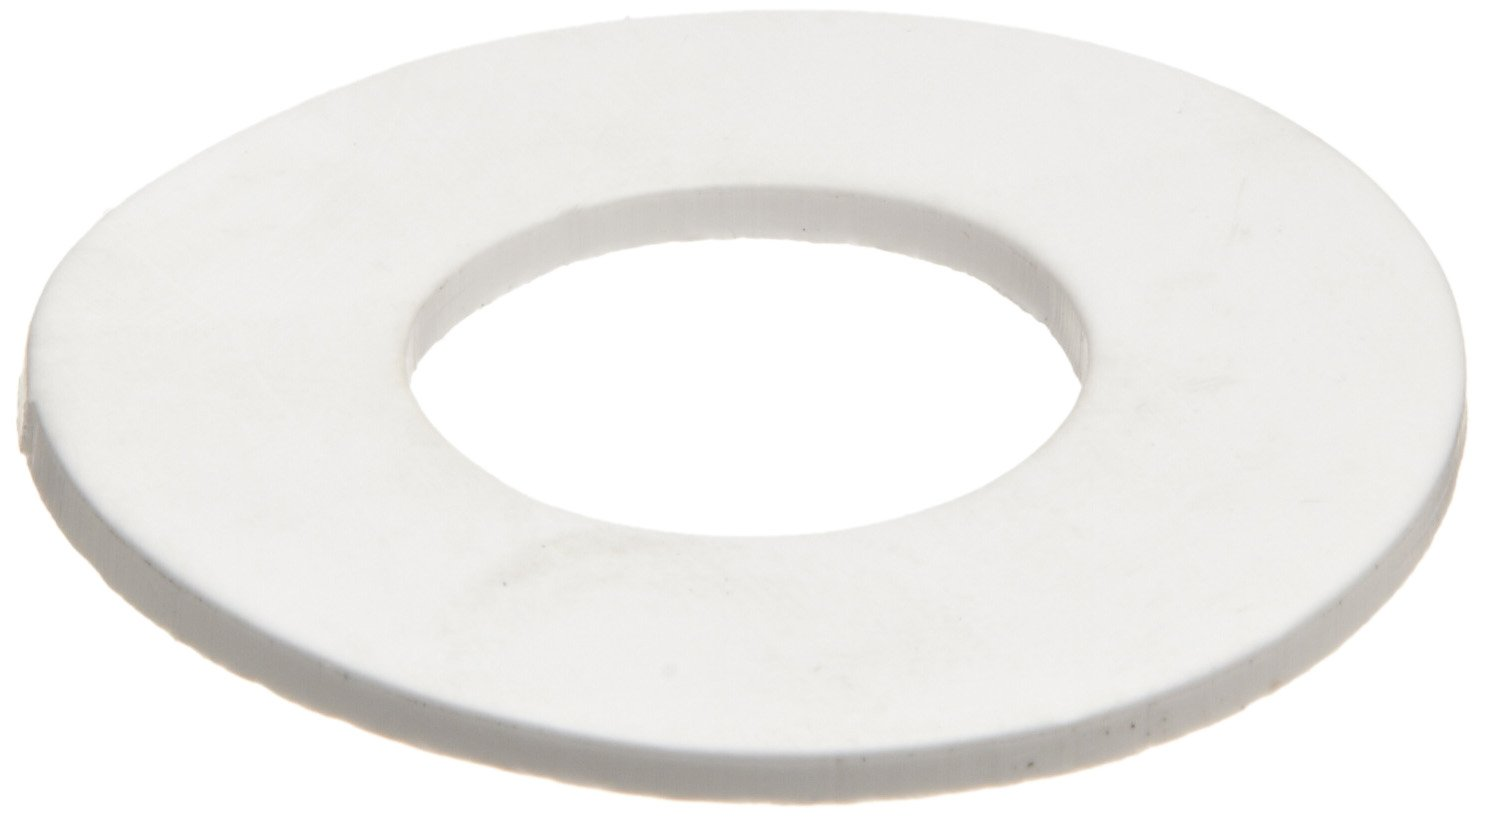 Pack of 1 Fits Class 150 Flange Ring 3 OD 1//16 Thick Expanded PTFE Flange Gasket White Small Parts RG-TFE-T24SH-006-150-0125 Pack of 1 1//16 Thick 1-1//4 Pipe Size 1-21//32 ID 3 OD Soft 1-21//32 ID 1-1//4 Pipe Size